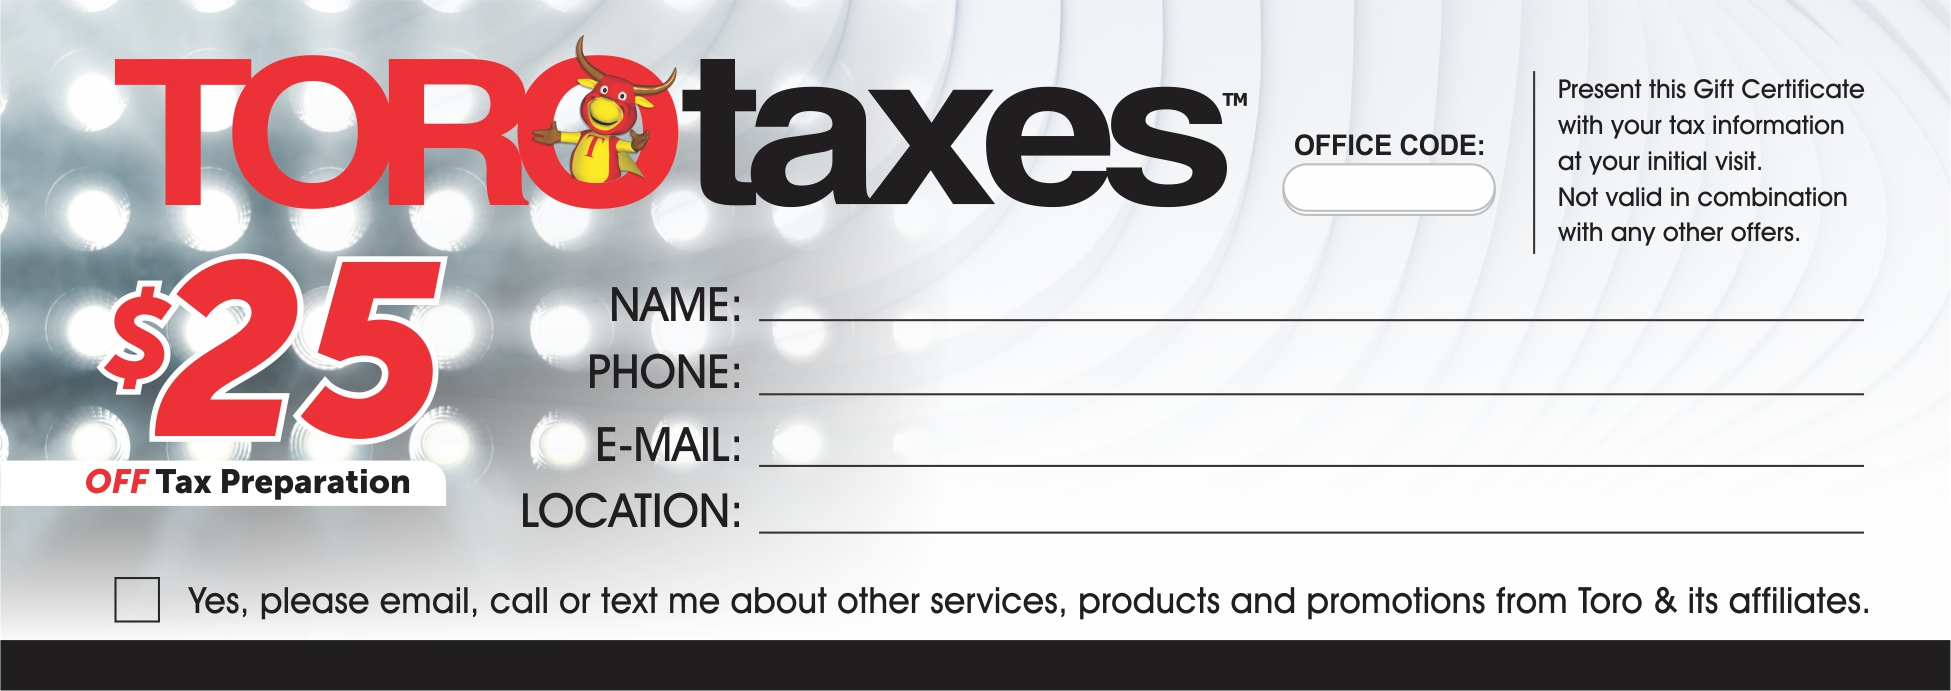 $25 off Tax preparation from Toro Taxes